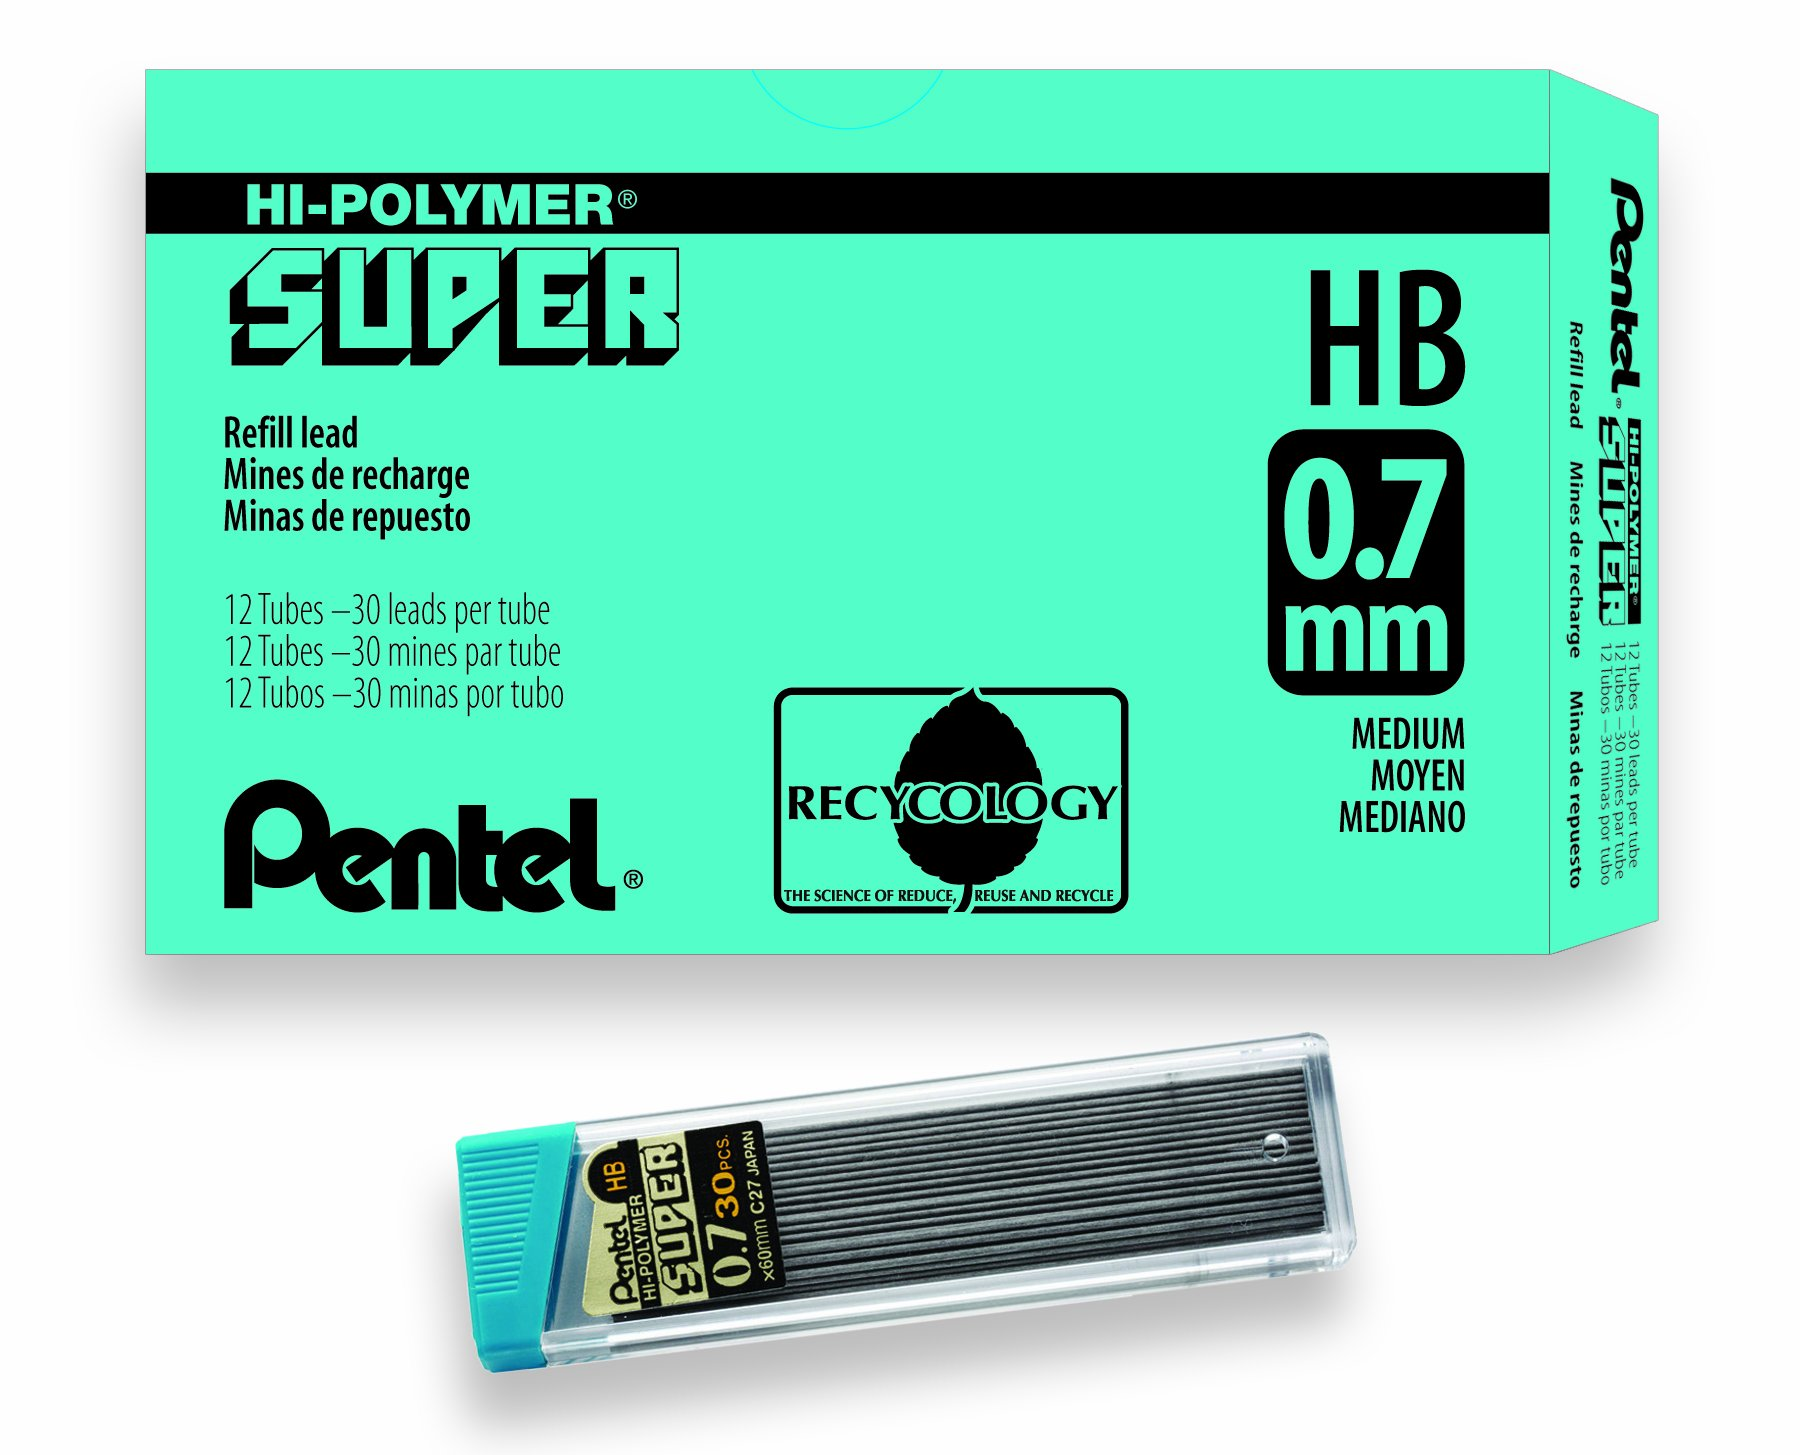 Pentel Super Hi-Polymer Lead Refill, 0.7mm Medium, HB, 360 Pieces of Lead (C27-HB)